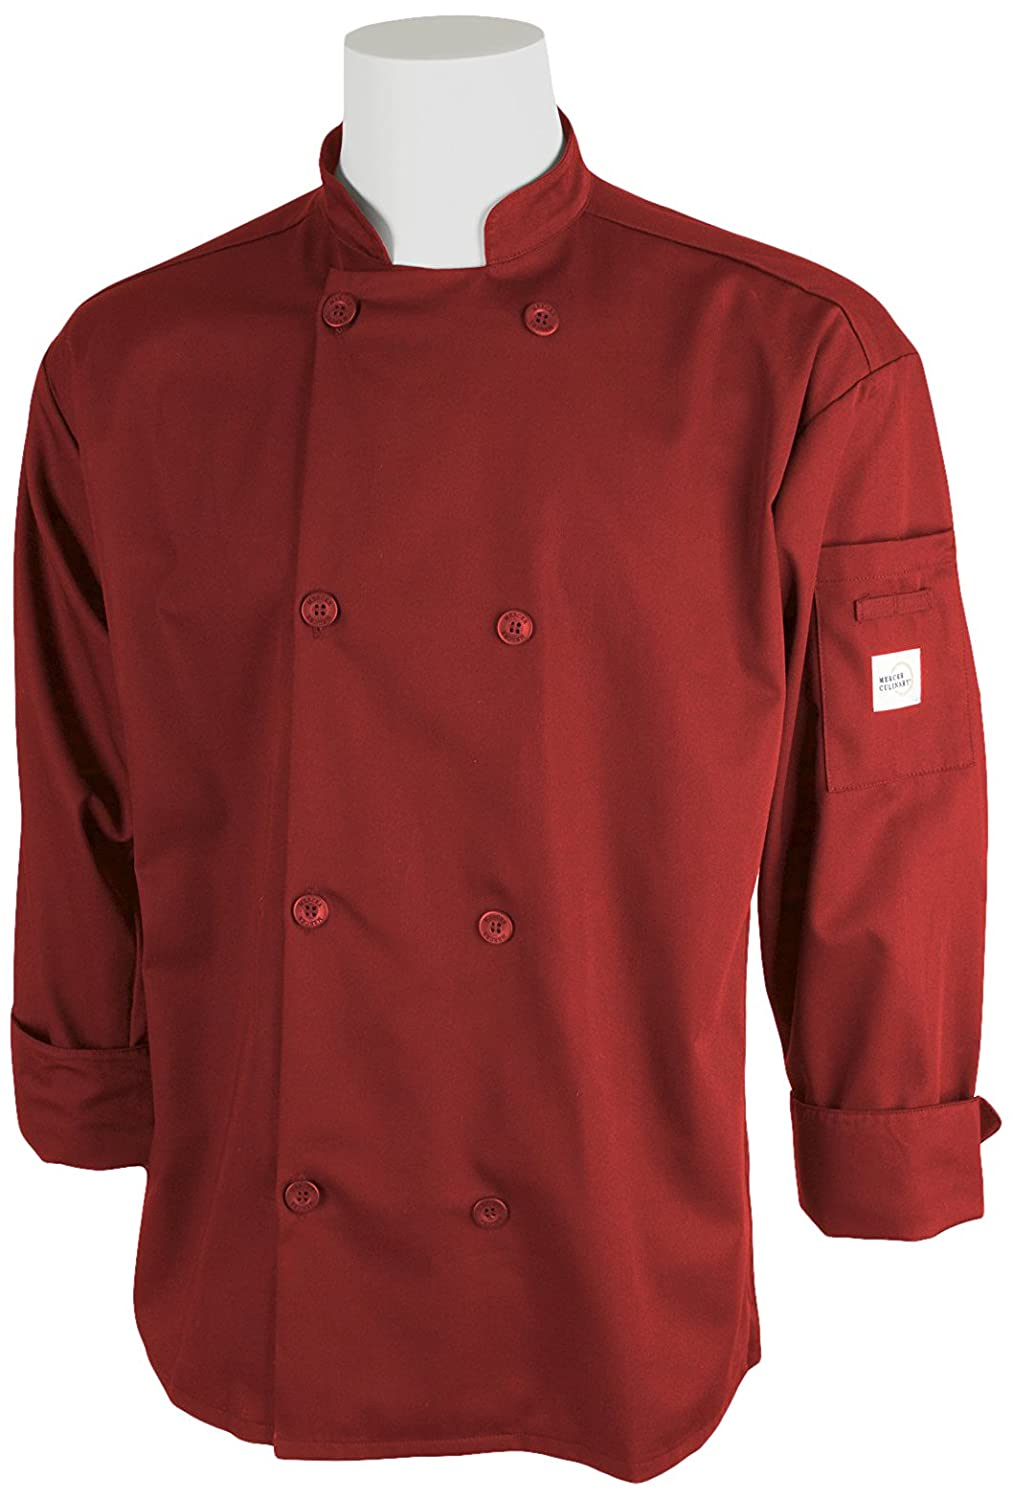 3X-Large Navy Blue Mercer Culinary M60010NB3X Millennia Unisex Cook Jacket with Traditional Buttons